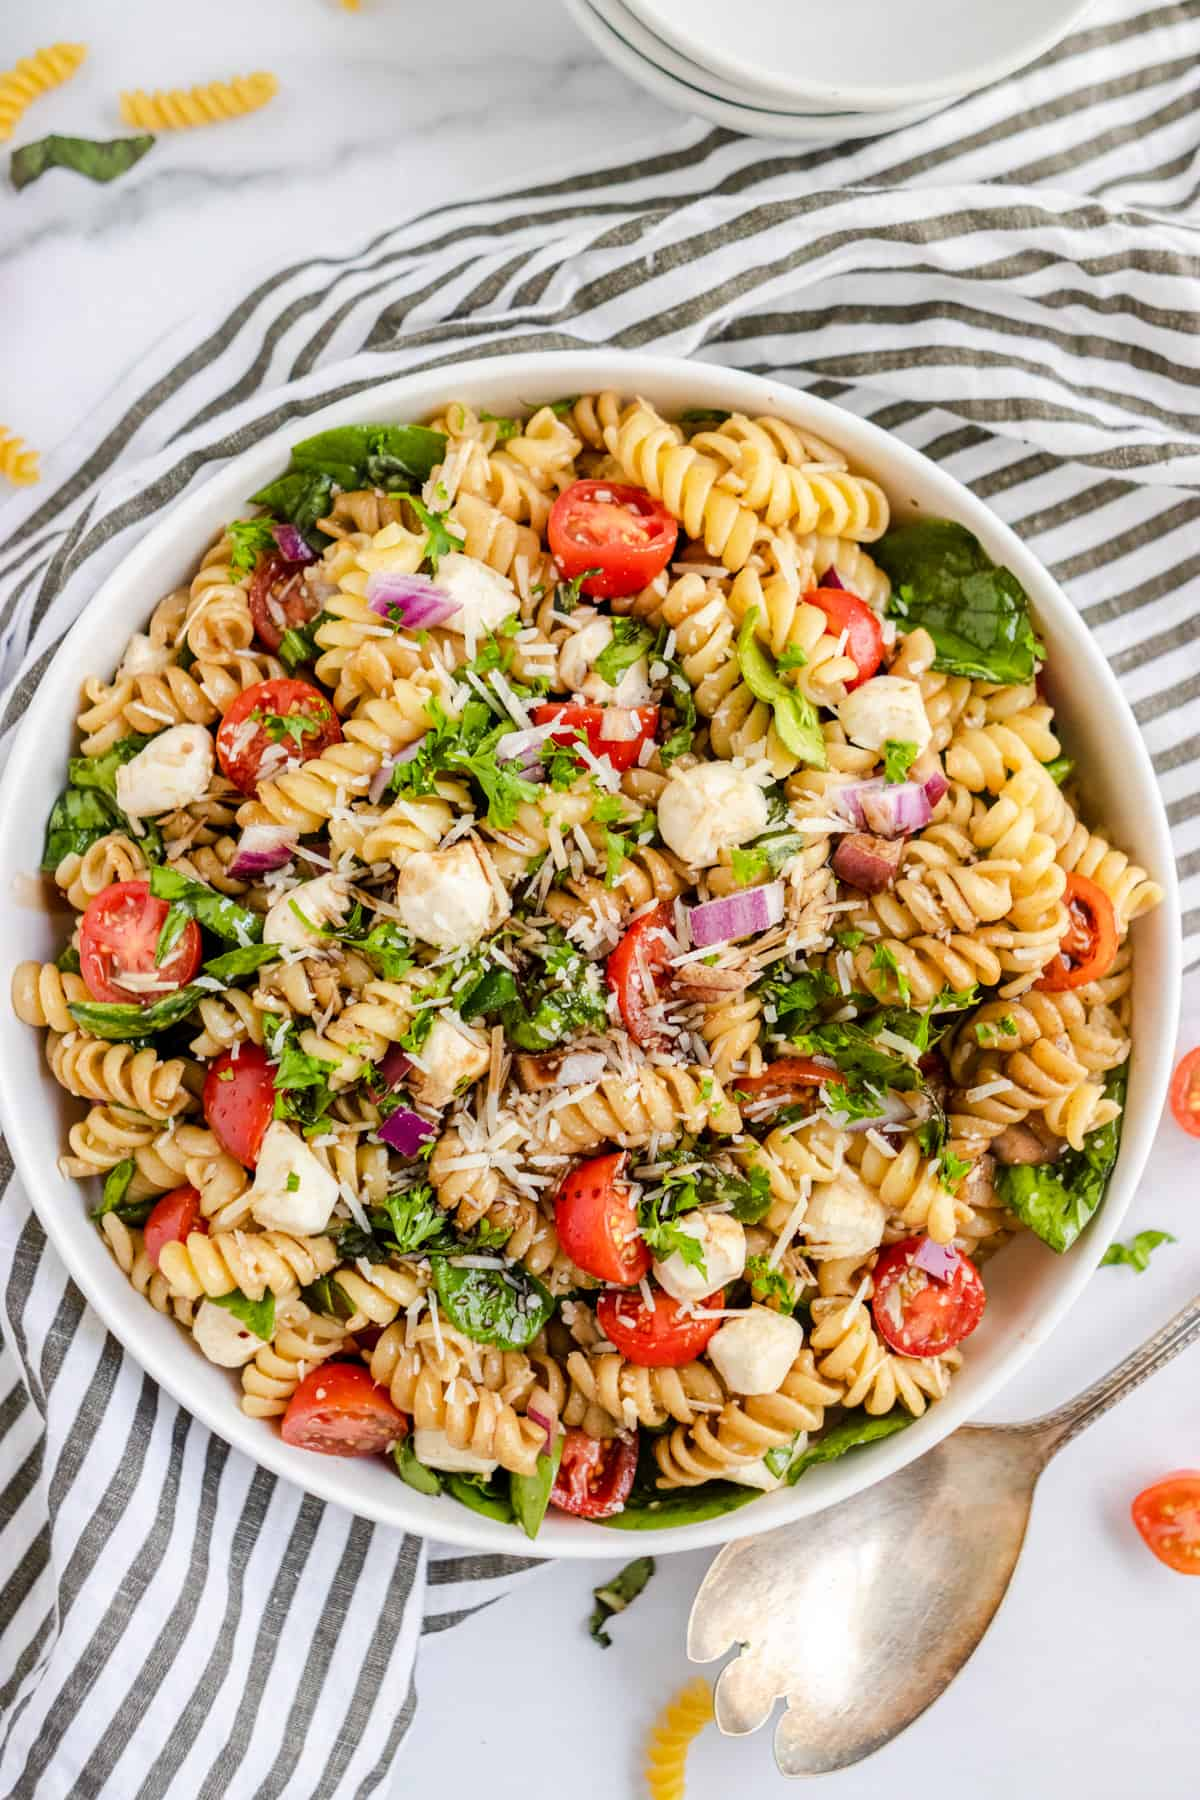 Overhead shot of rotini pasta salad with serving spoon.